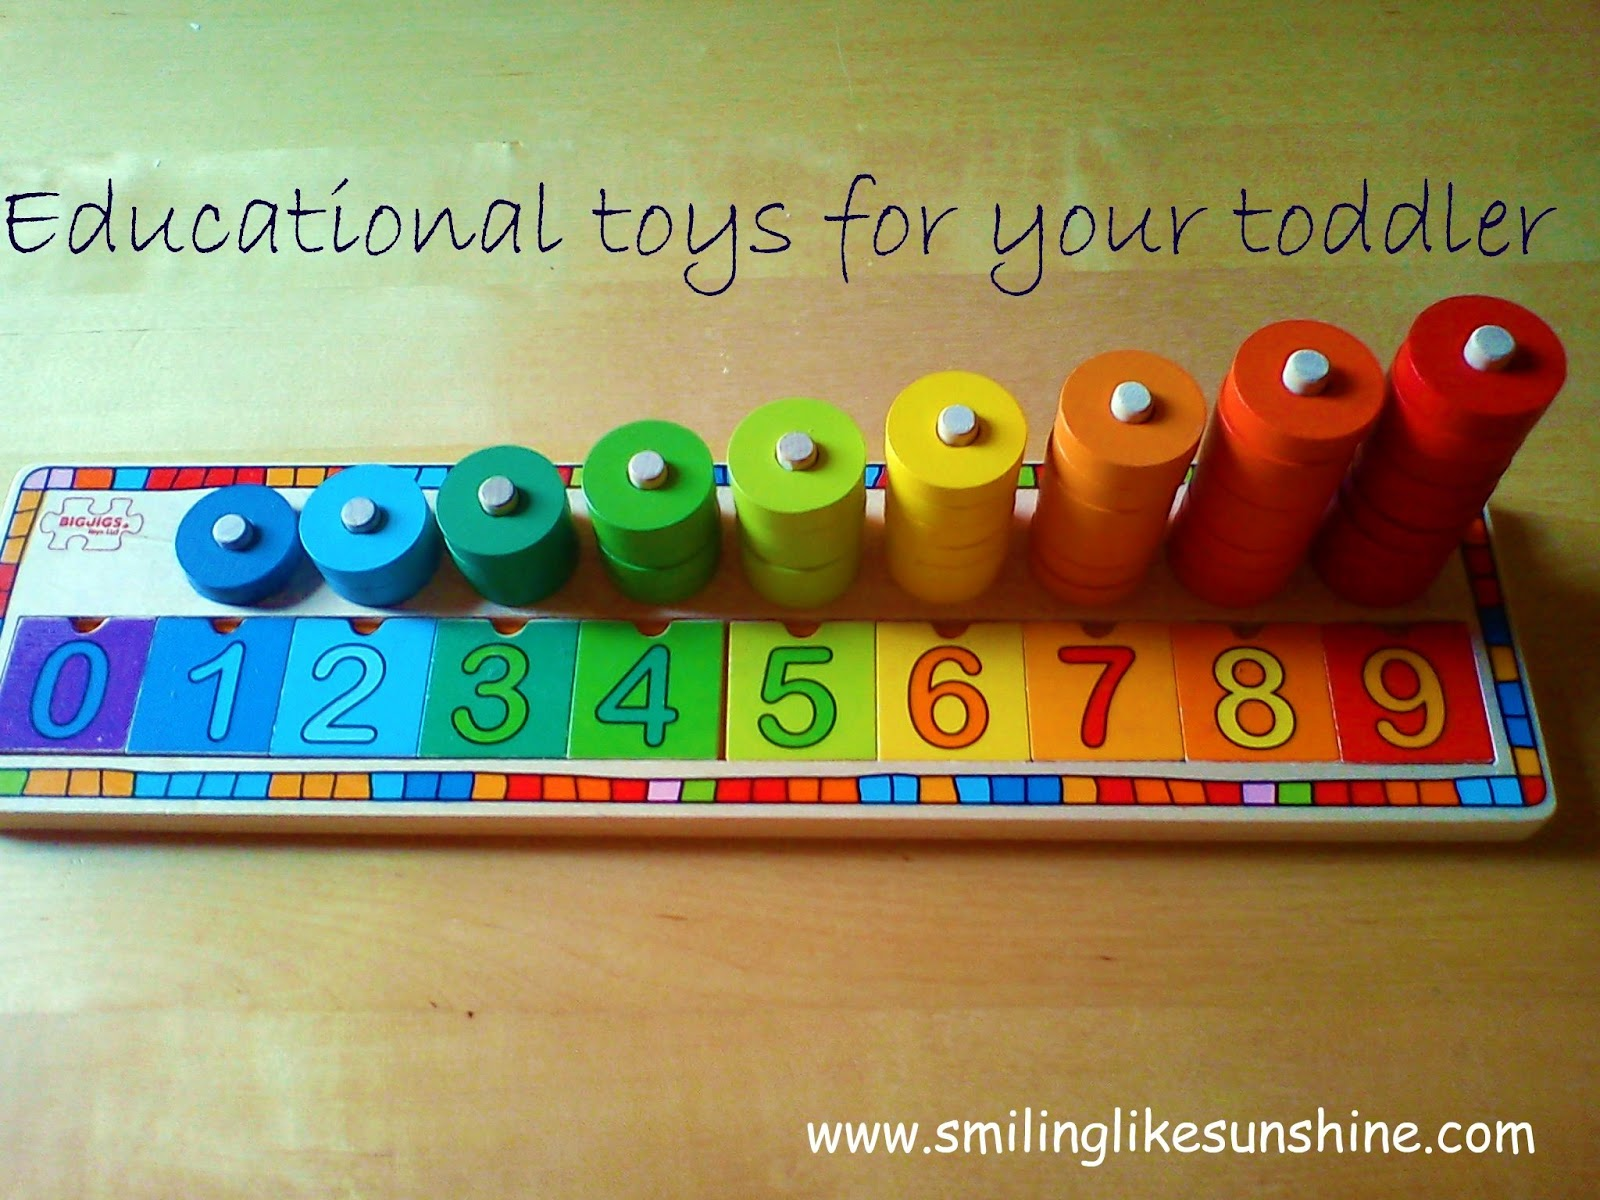 Smiling like Sunshine Educational toys for toddlers